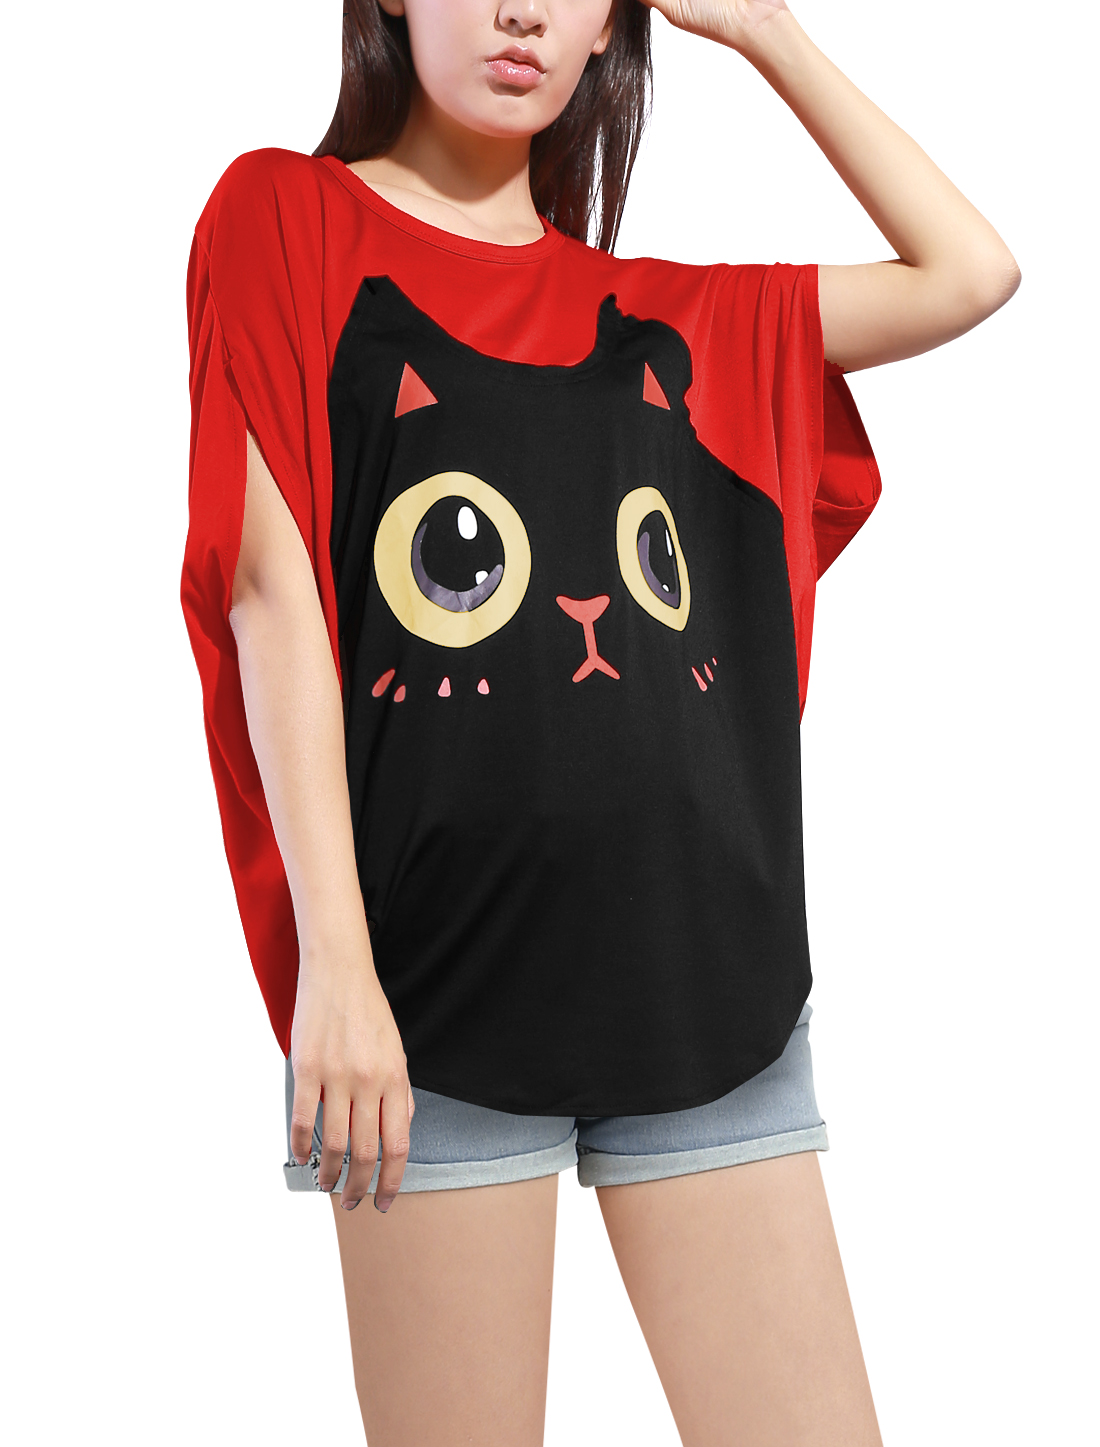 e65715389 Allegra K Women Round Neck Batwing Sleeve Cartoon Pattern Pullover Tunic  Shirt-in T-Shirts from Women's Clothing on Aliexpress.com | Alibaba Group